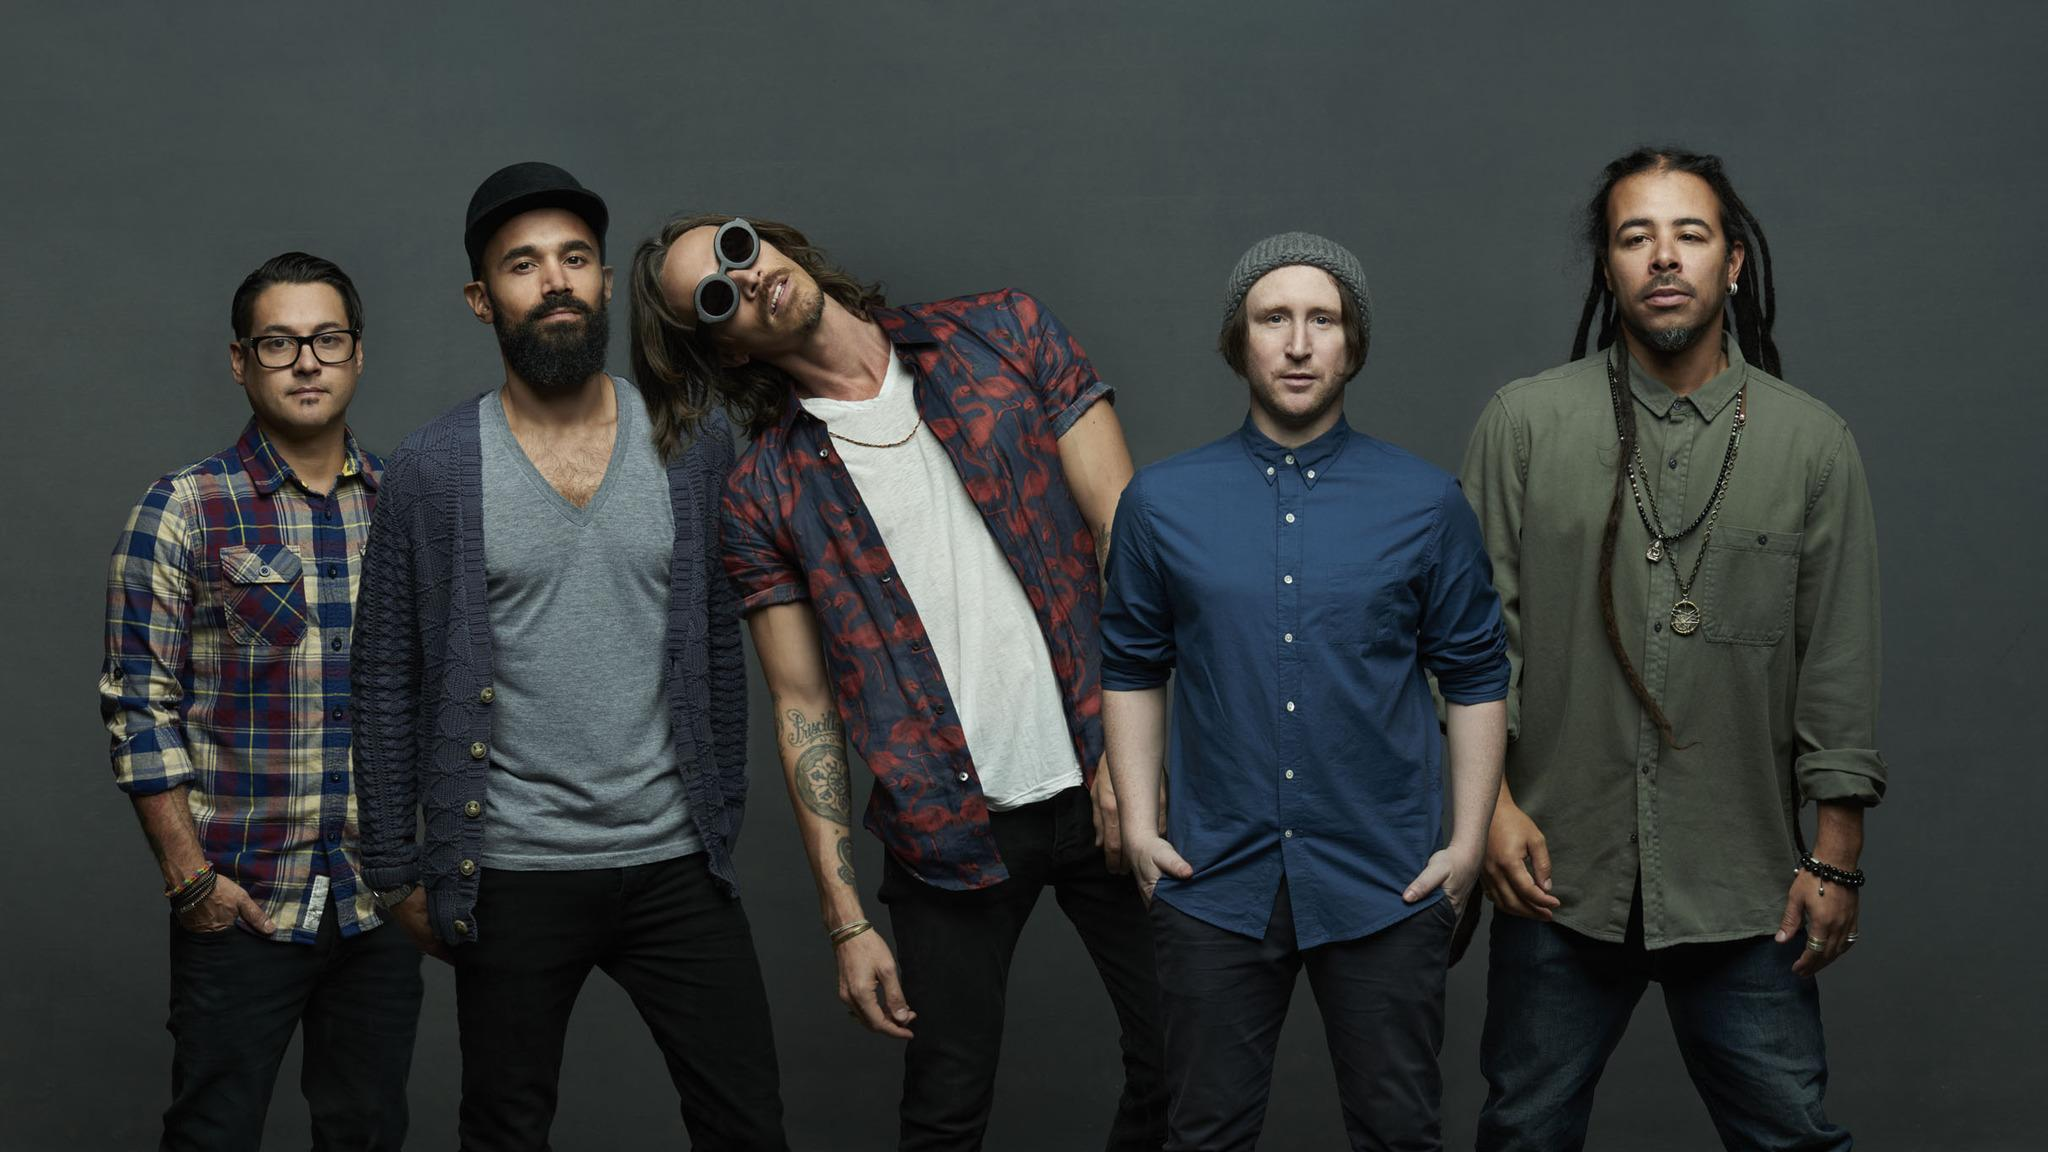 8 Tour- Incubus With Special Guests: Jimmy Eat World